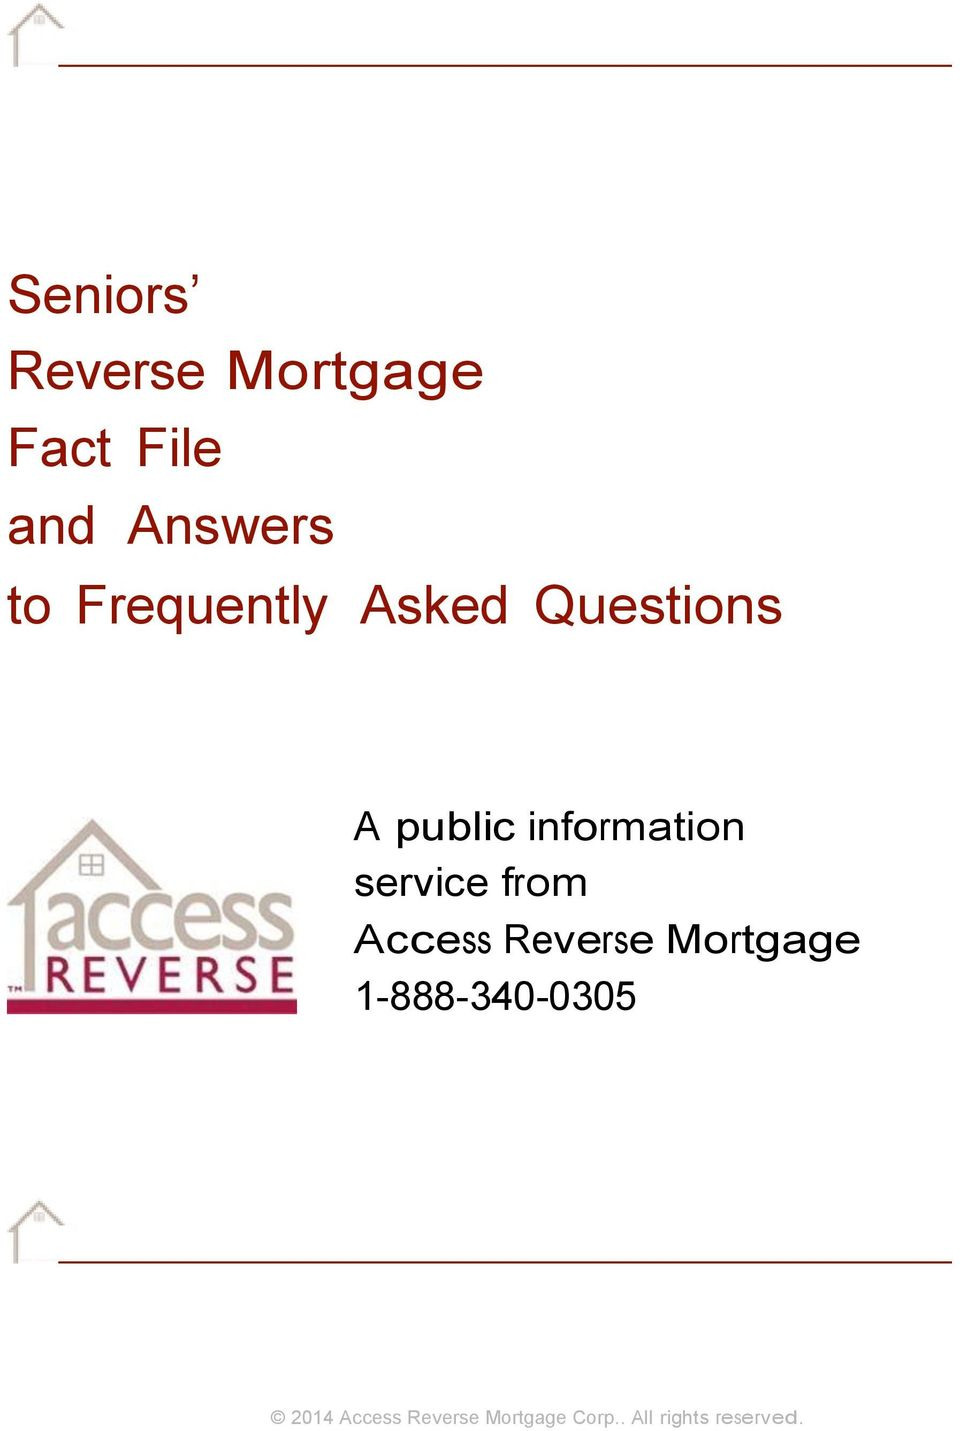 service from Access Reverse Mortgage 1-888-340-0305